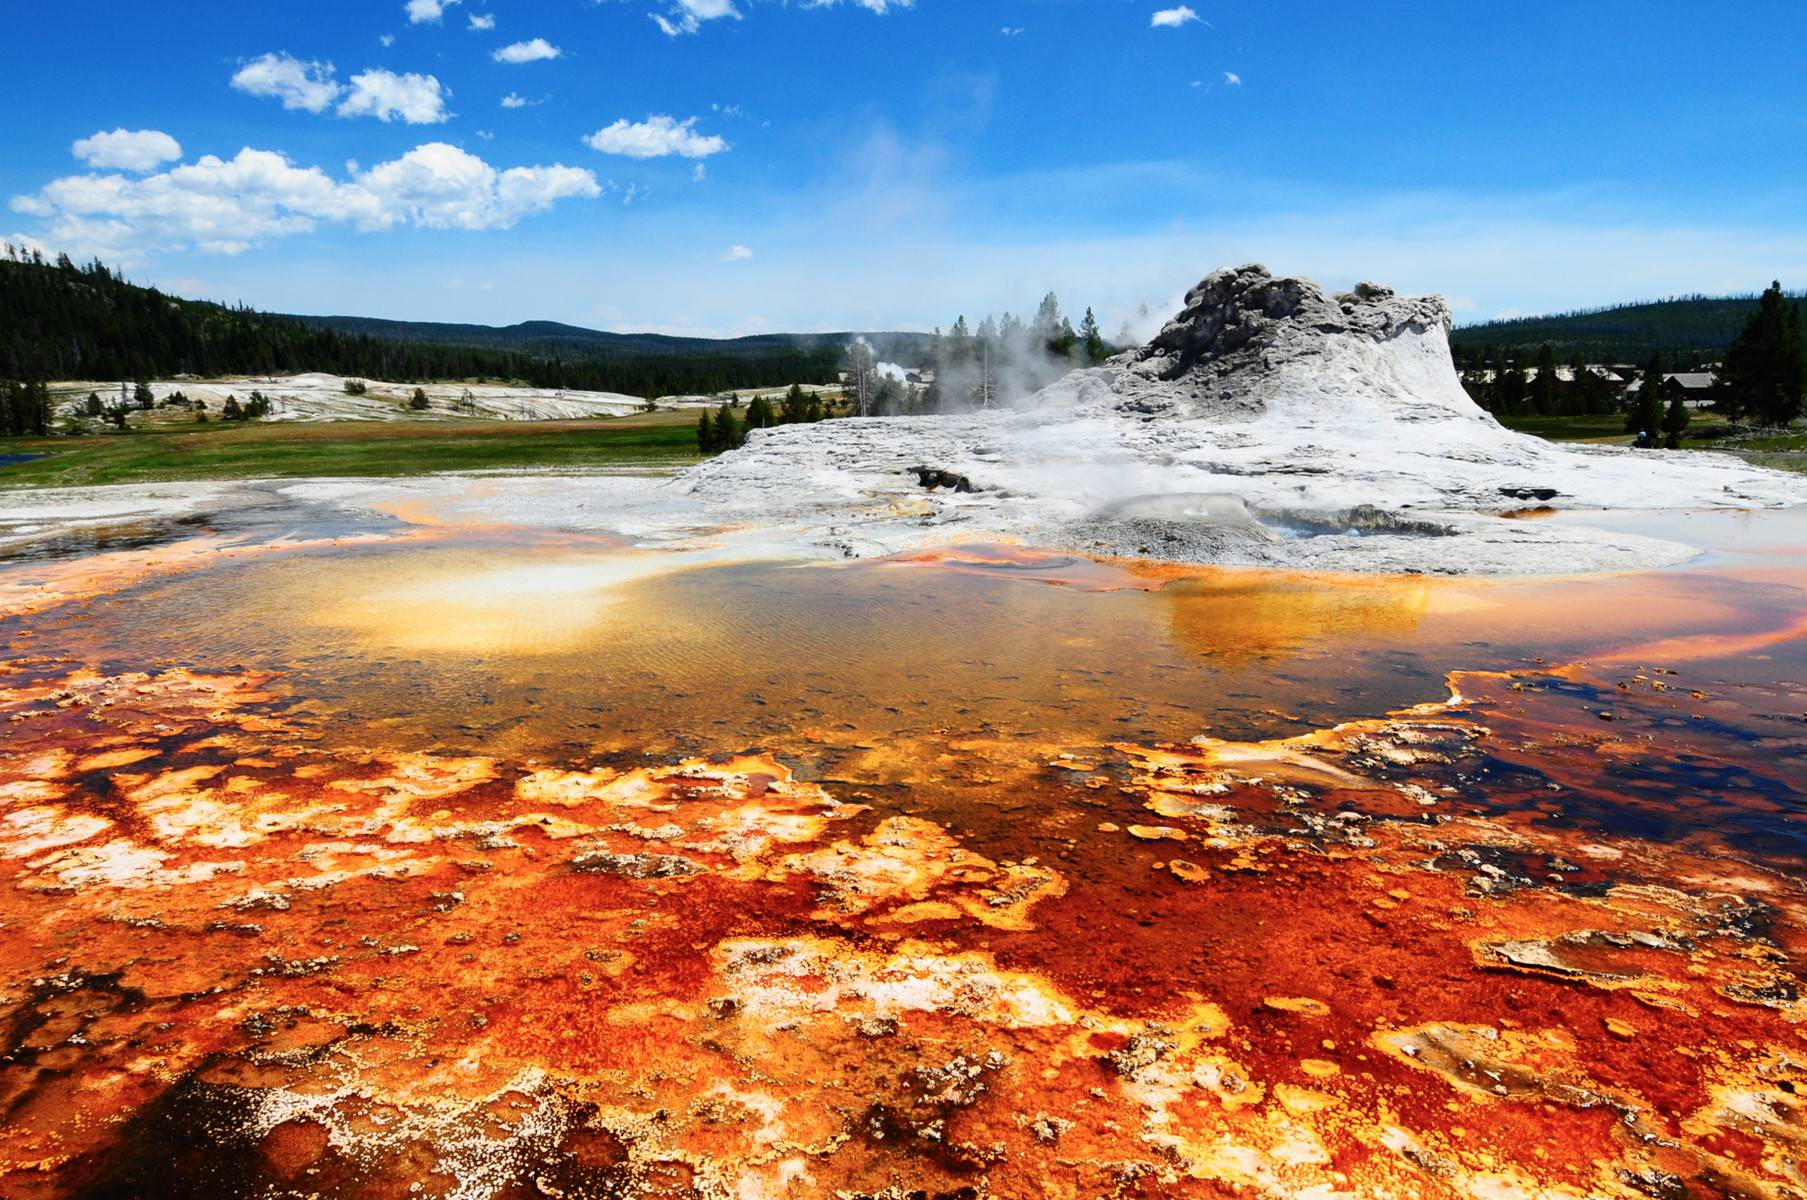 6-Day Bus Tour to Yellowstone National Park and Mt. Rushmore from Salt Lake City